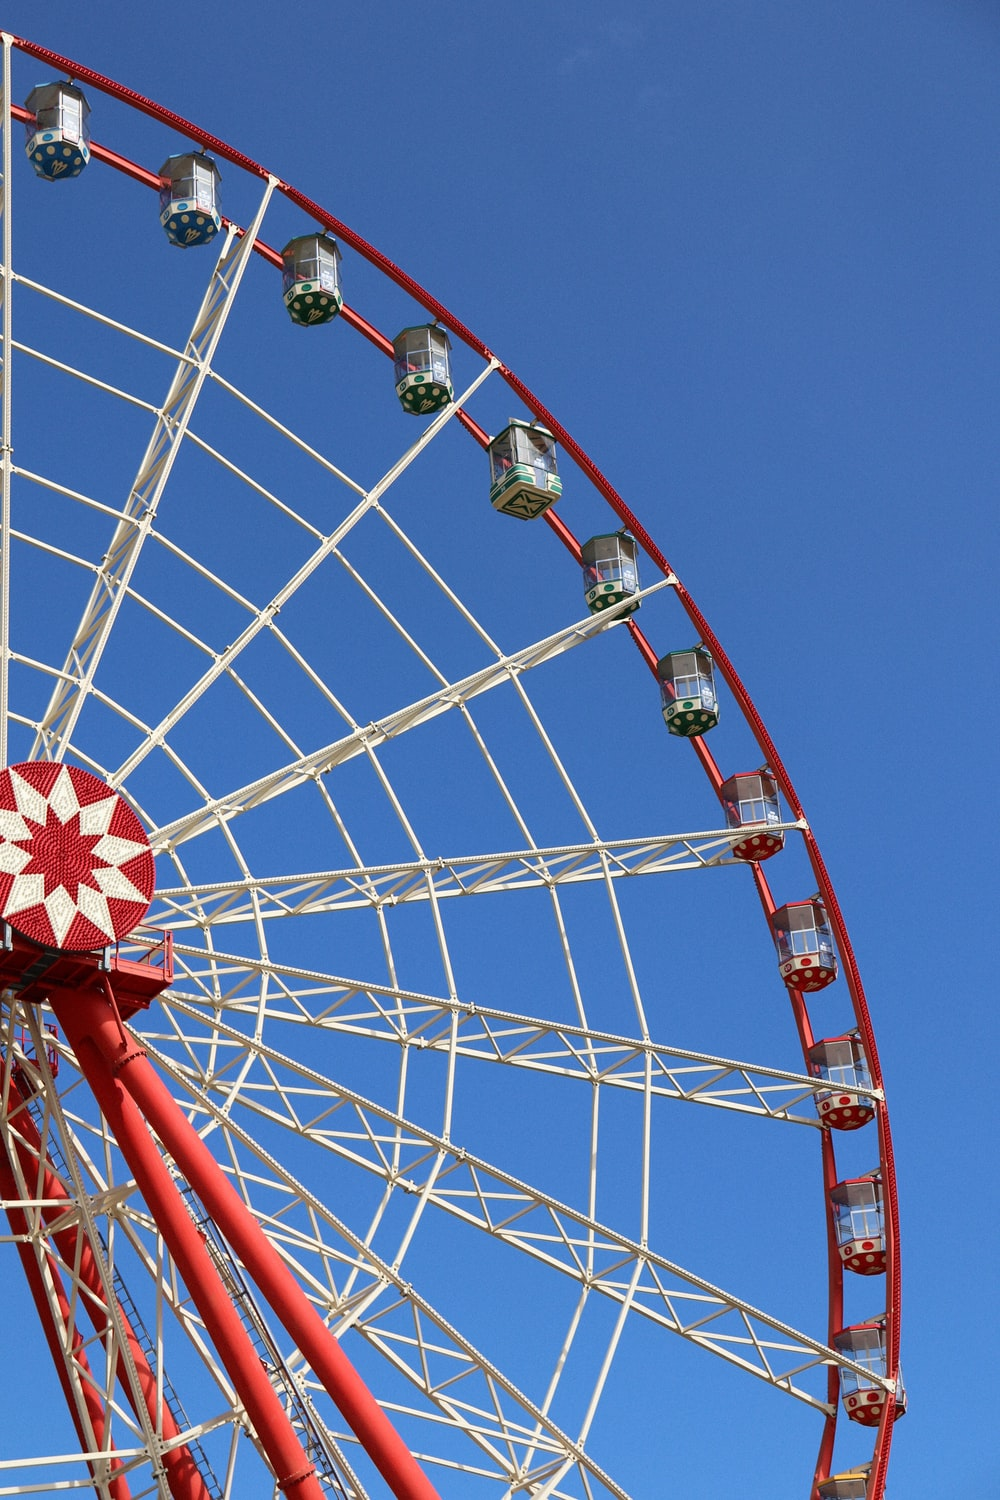 red and white Ferris Wheel under blue sky